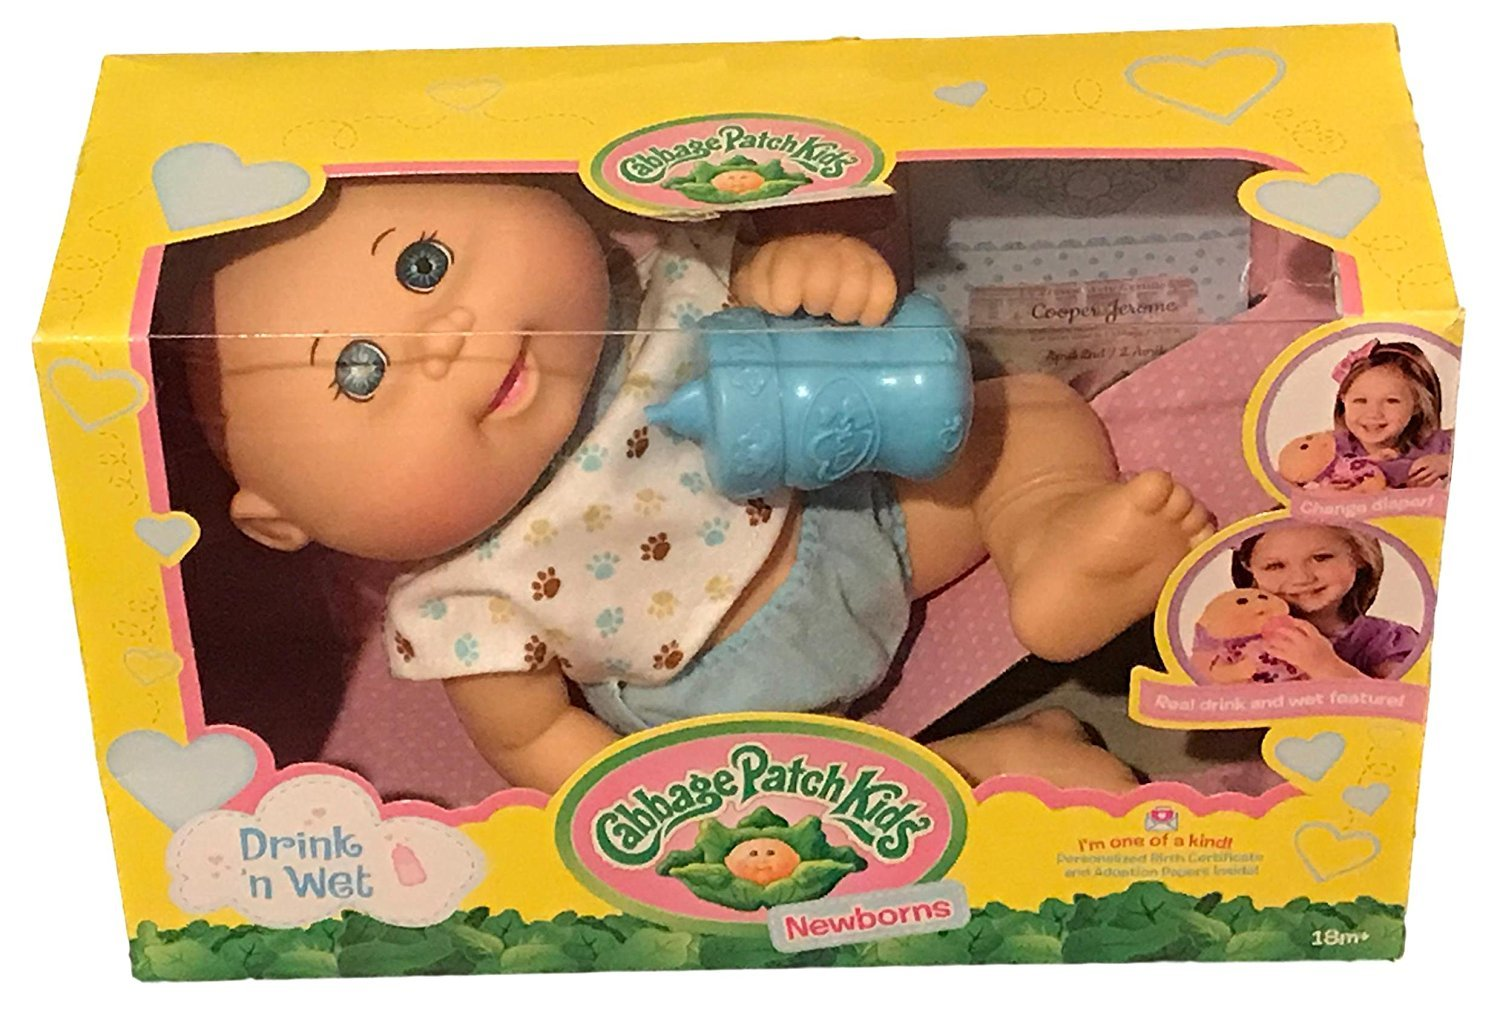 Cabbage Patch Kids Drink N' Wet Newborn Baby Doll (Paw Print) by